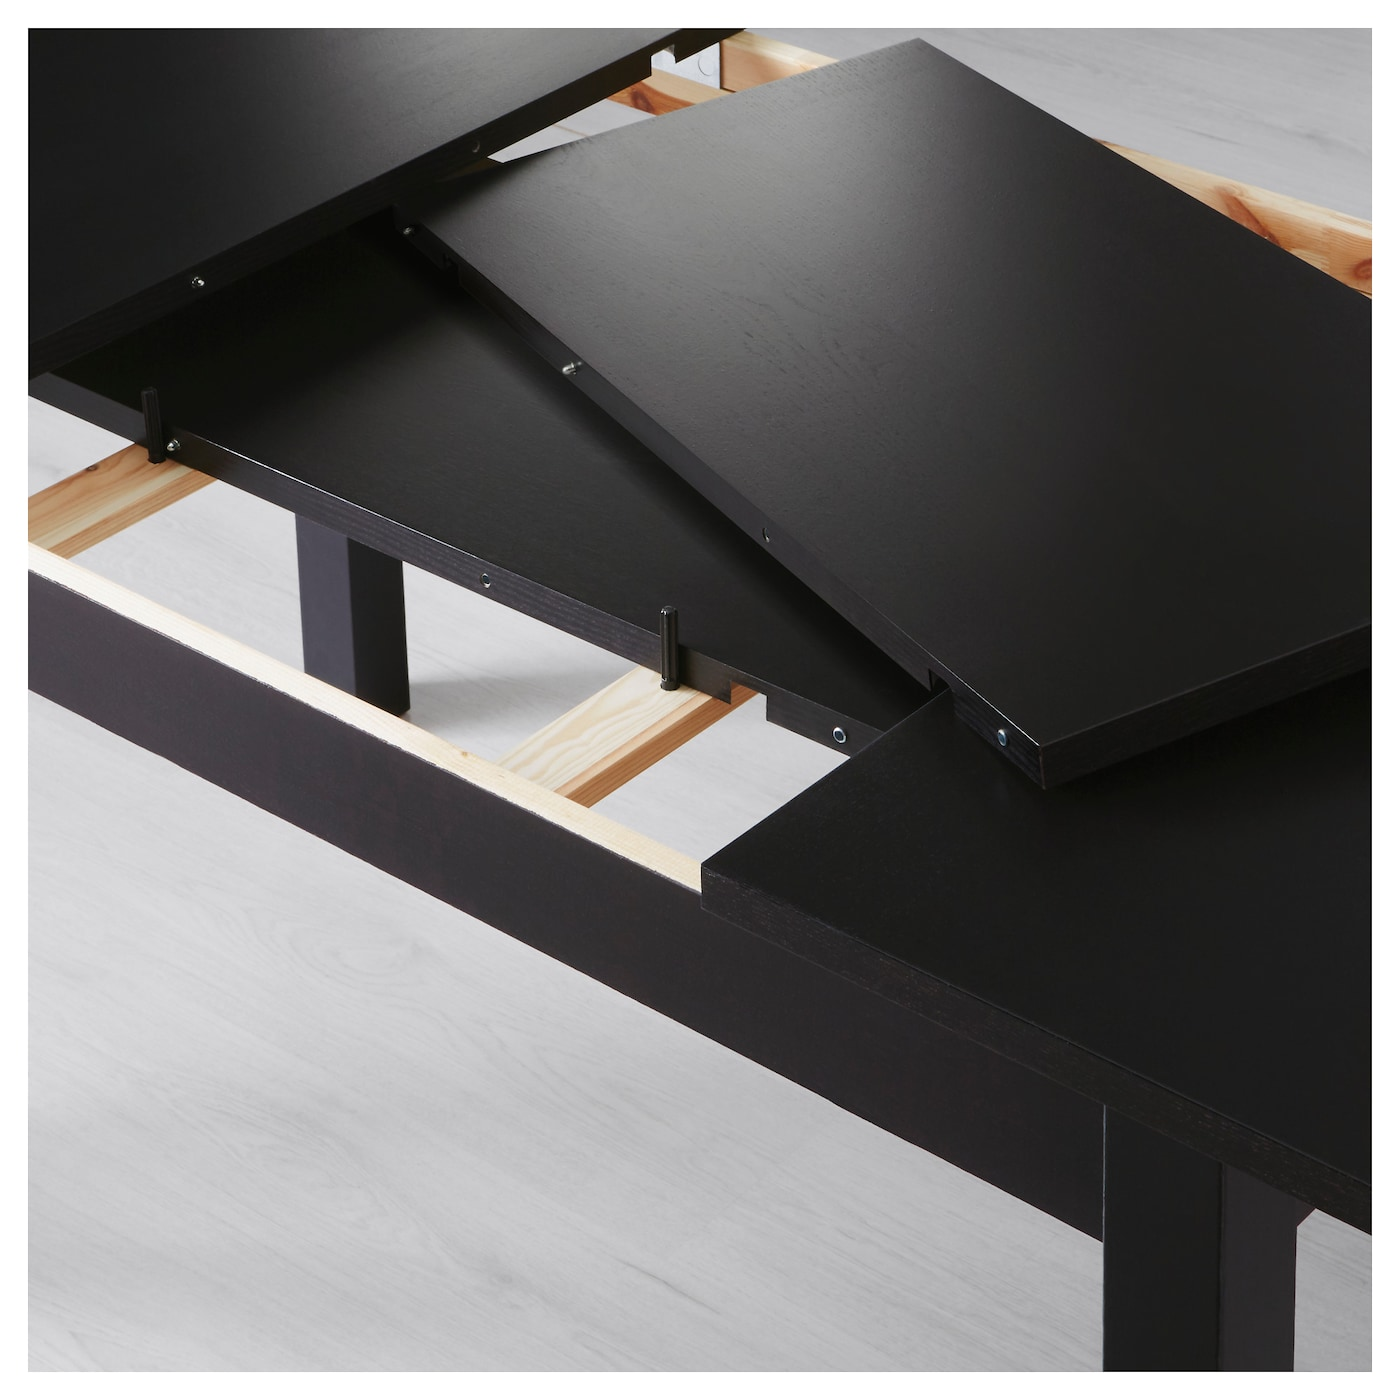 IKEA BJURSTA extendable table 2 extension leaves included.